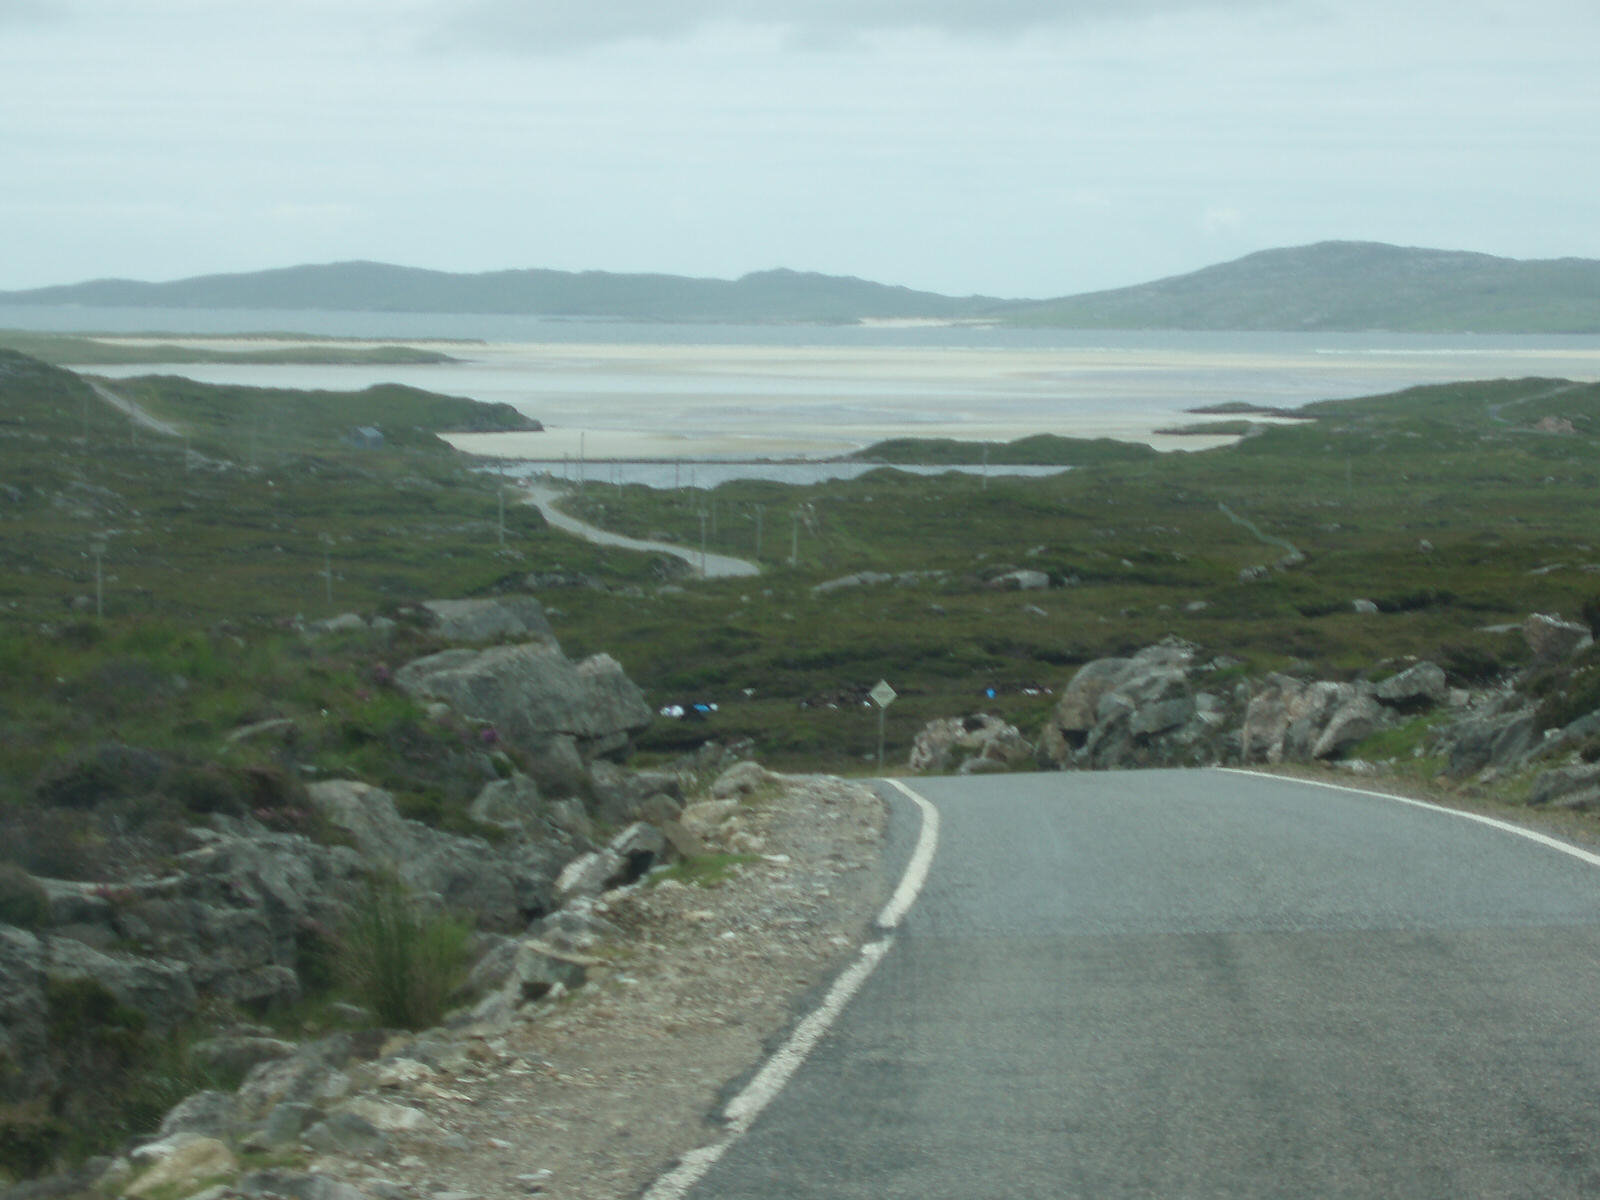 View of Luskentyre Sands with Taransay on the horizon